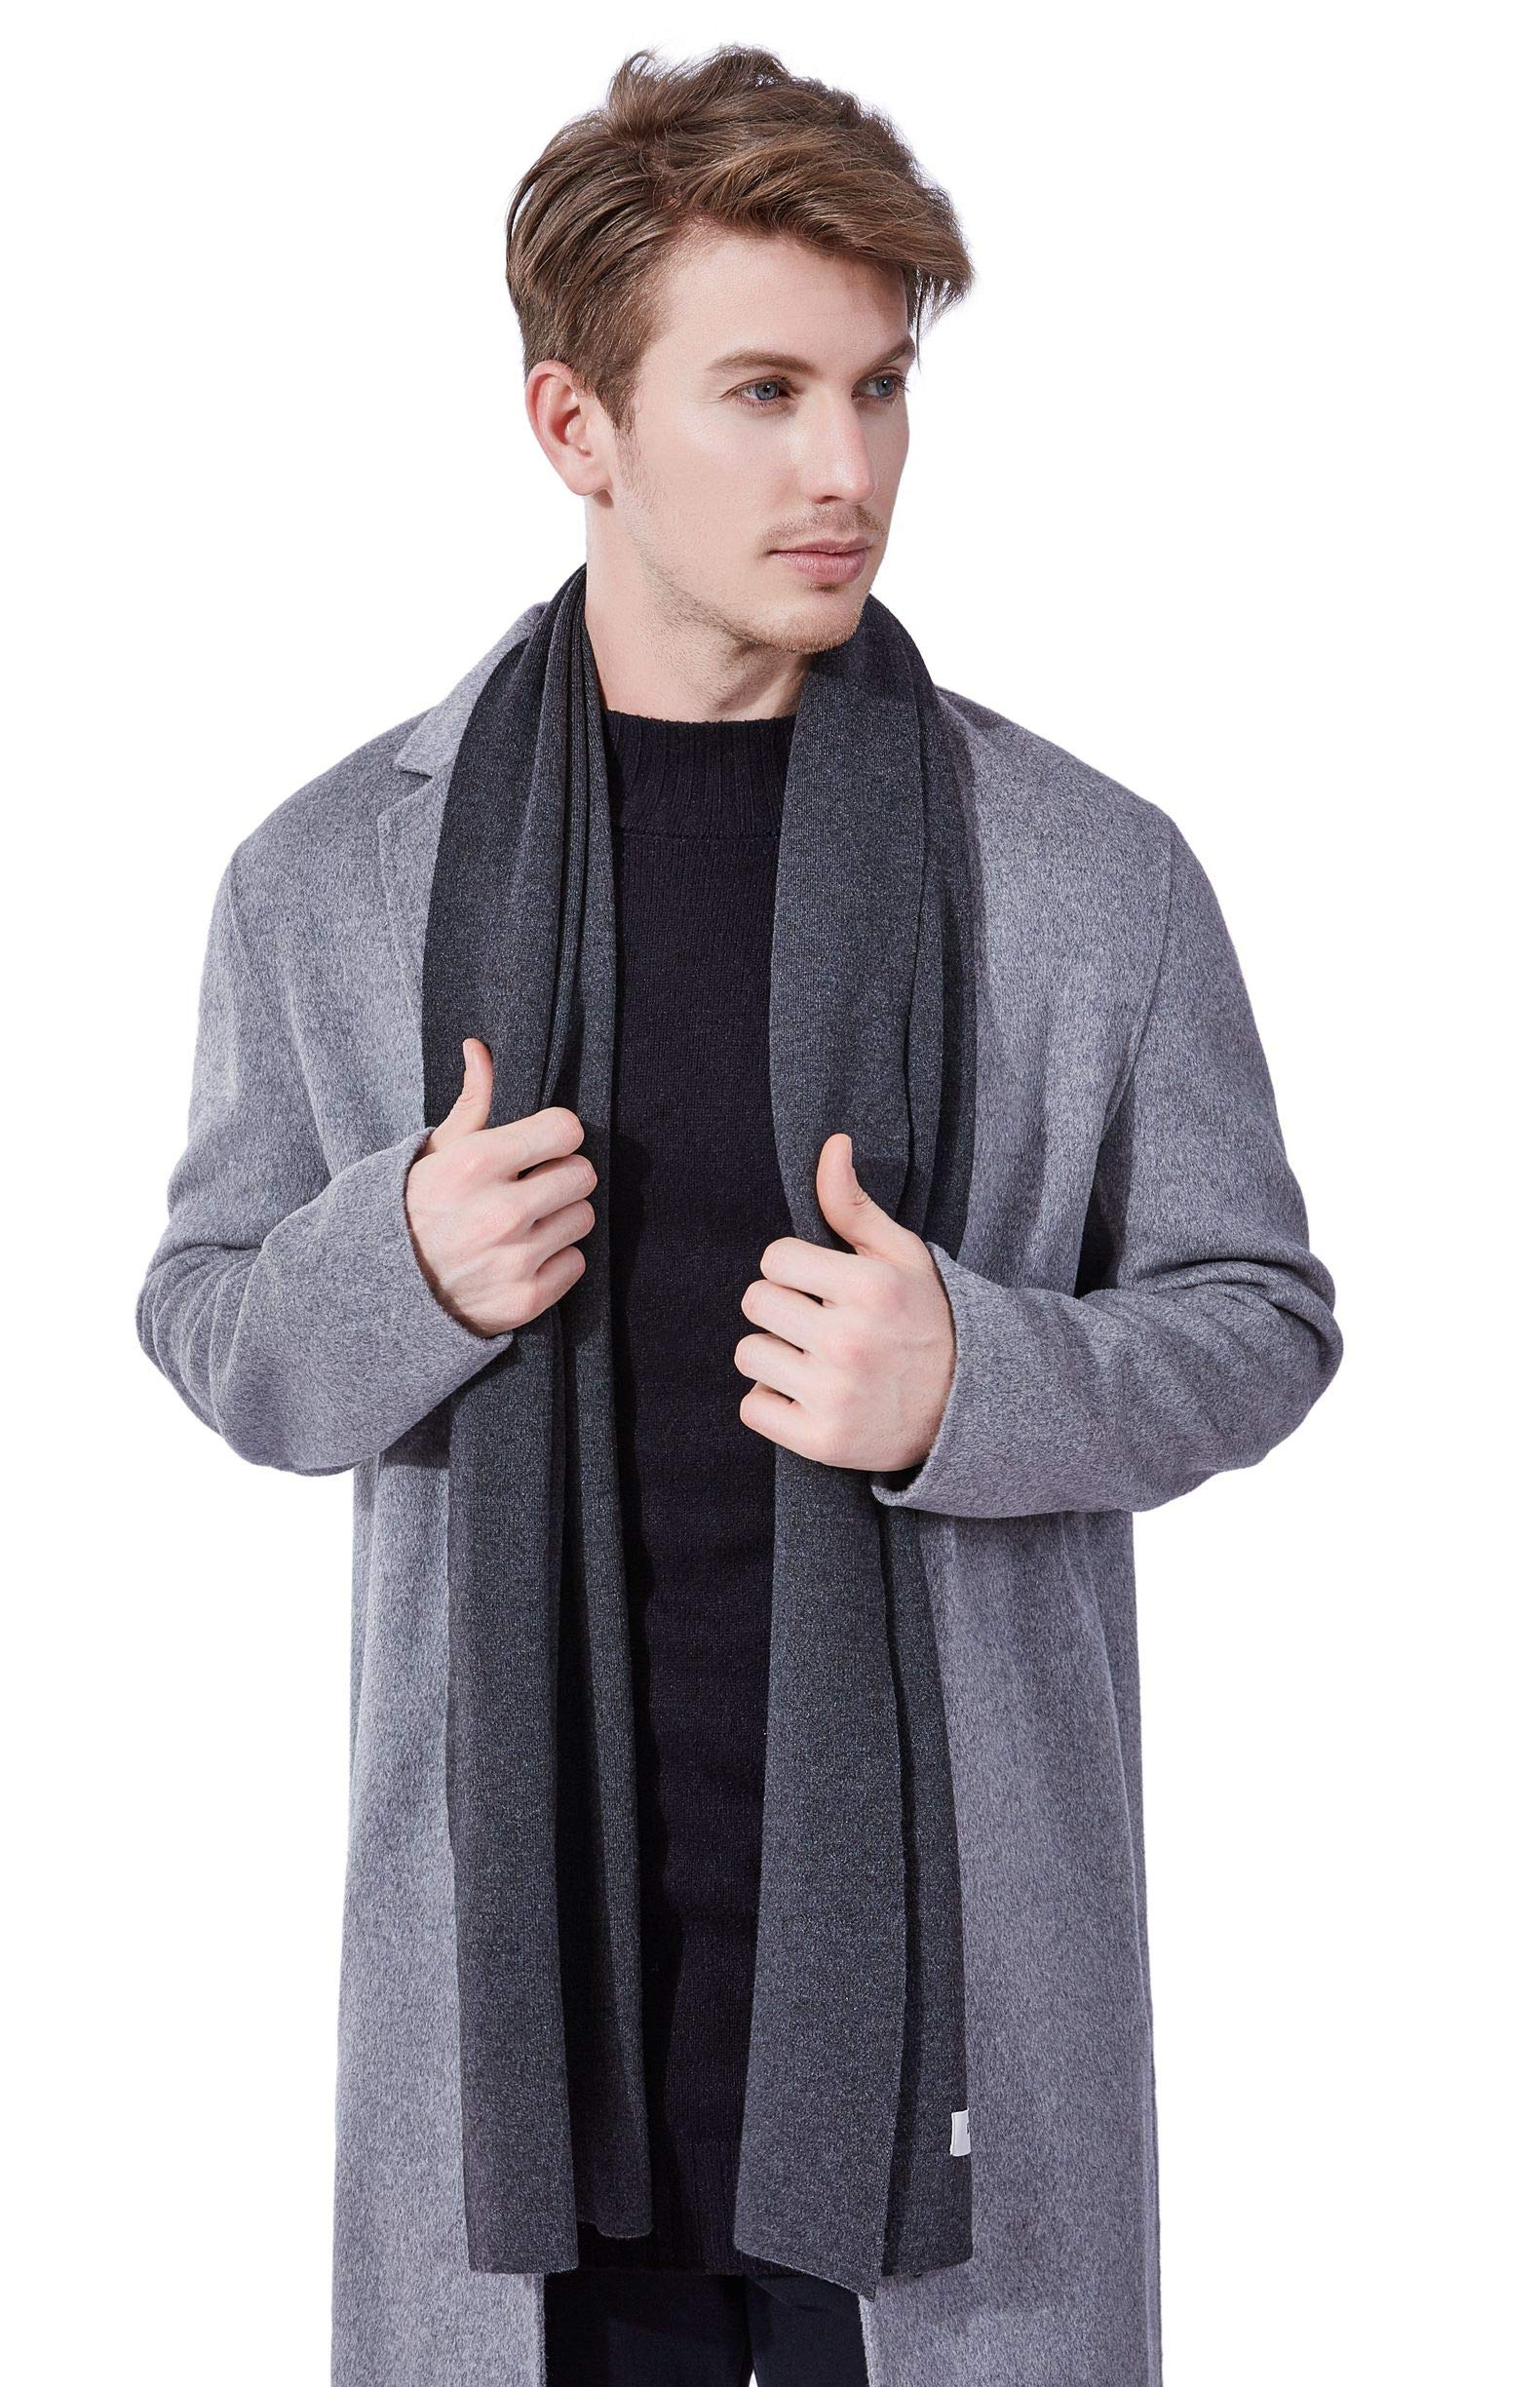 KUMONE Men Scarf Winter Cashmere Wool Scarves with Gift Bag, Dark Gray